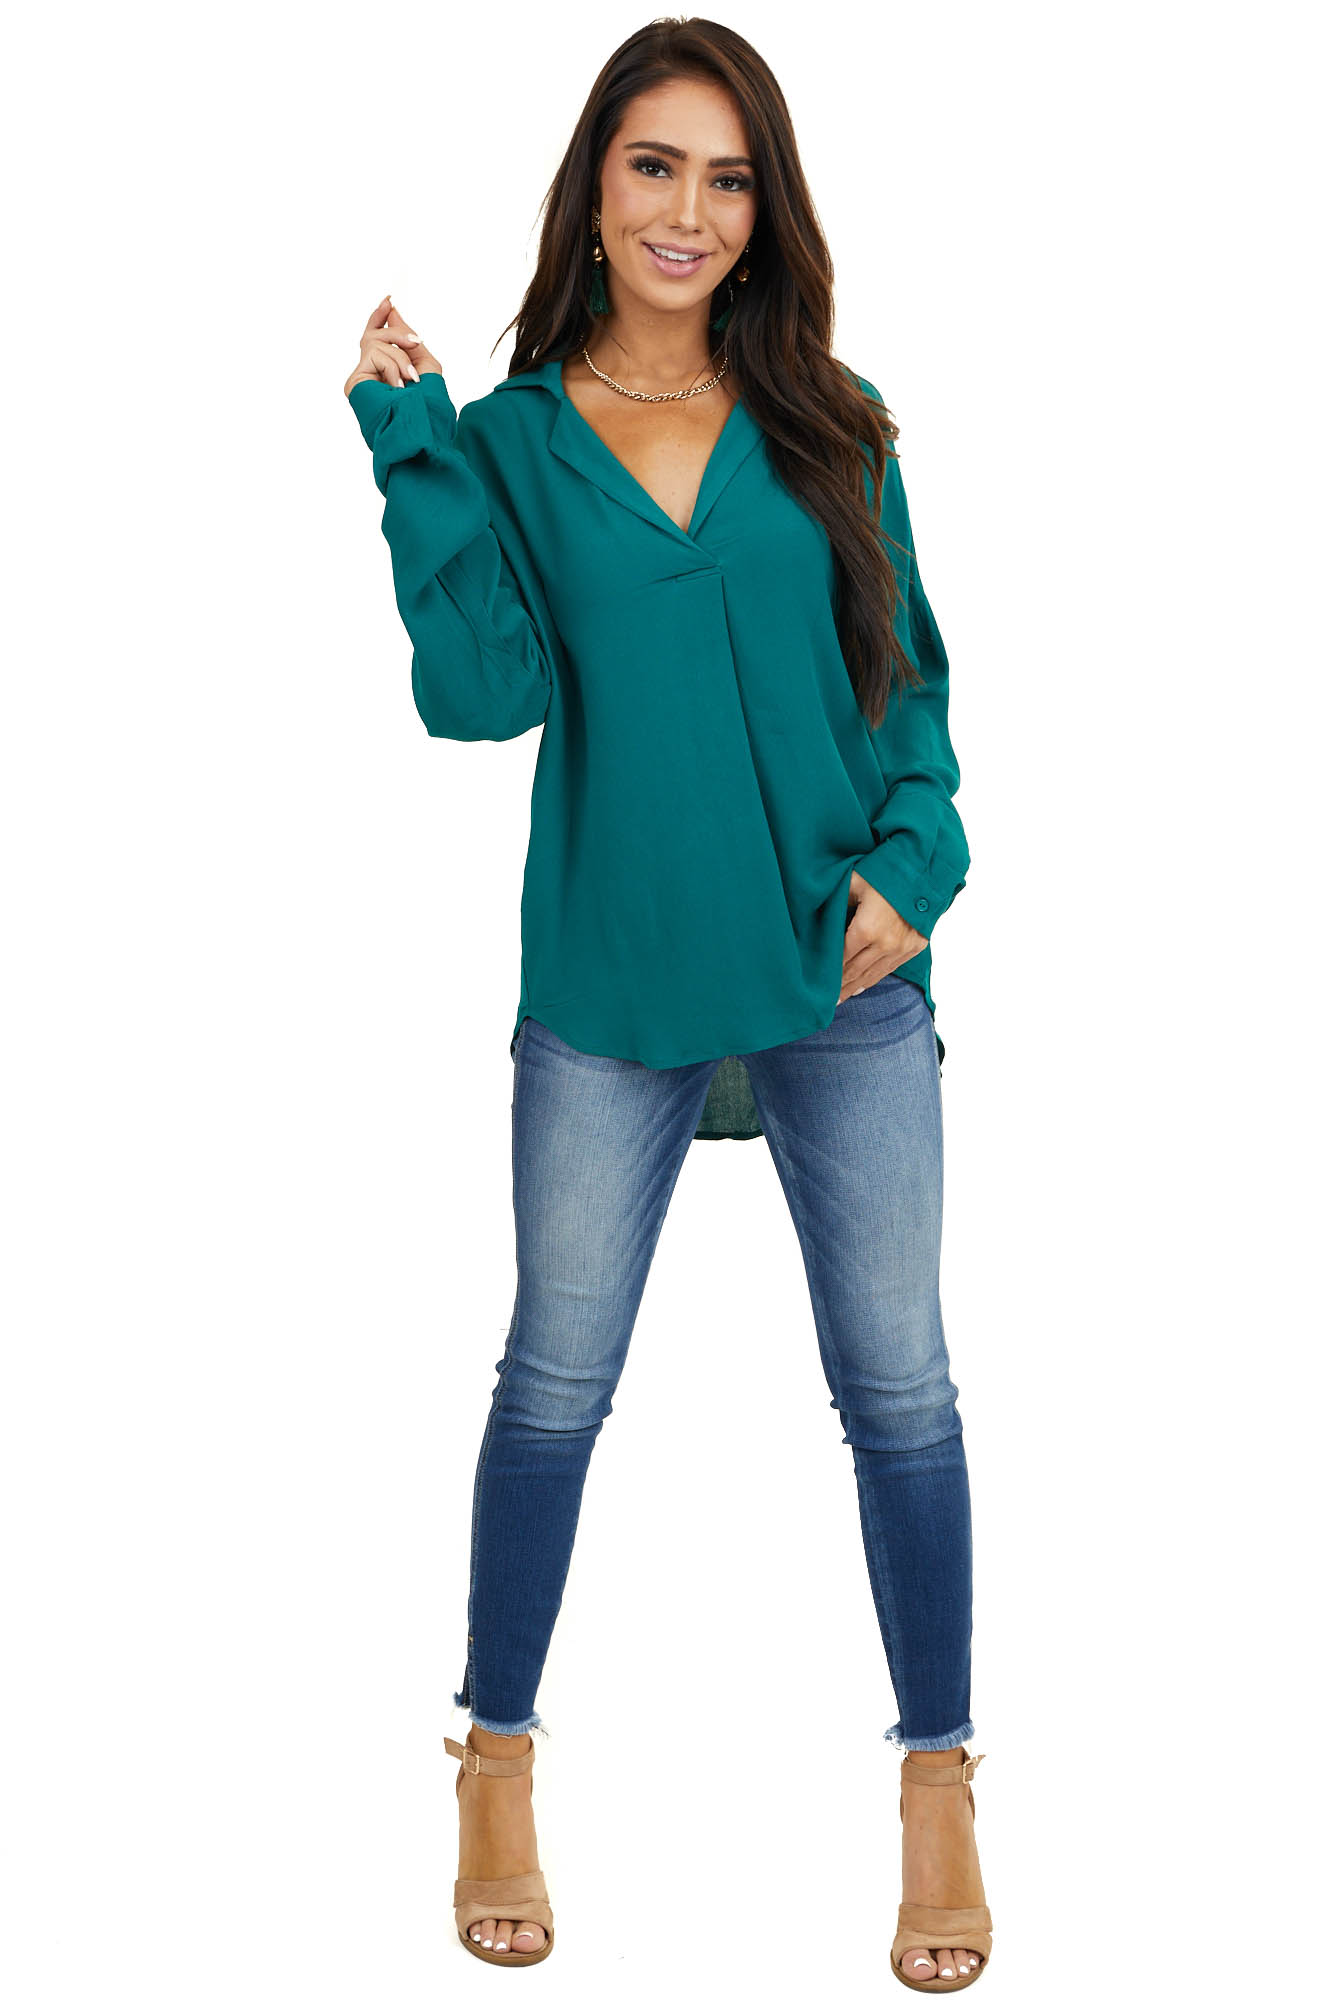 Hunter Green Collared Tunic Blouse with Cuffed Long Sleeves